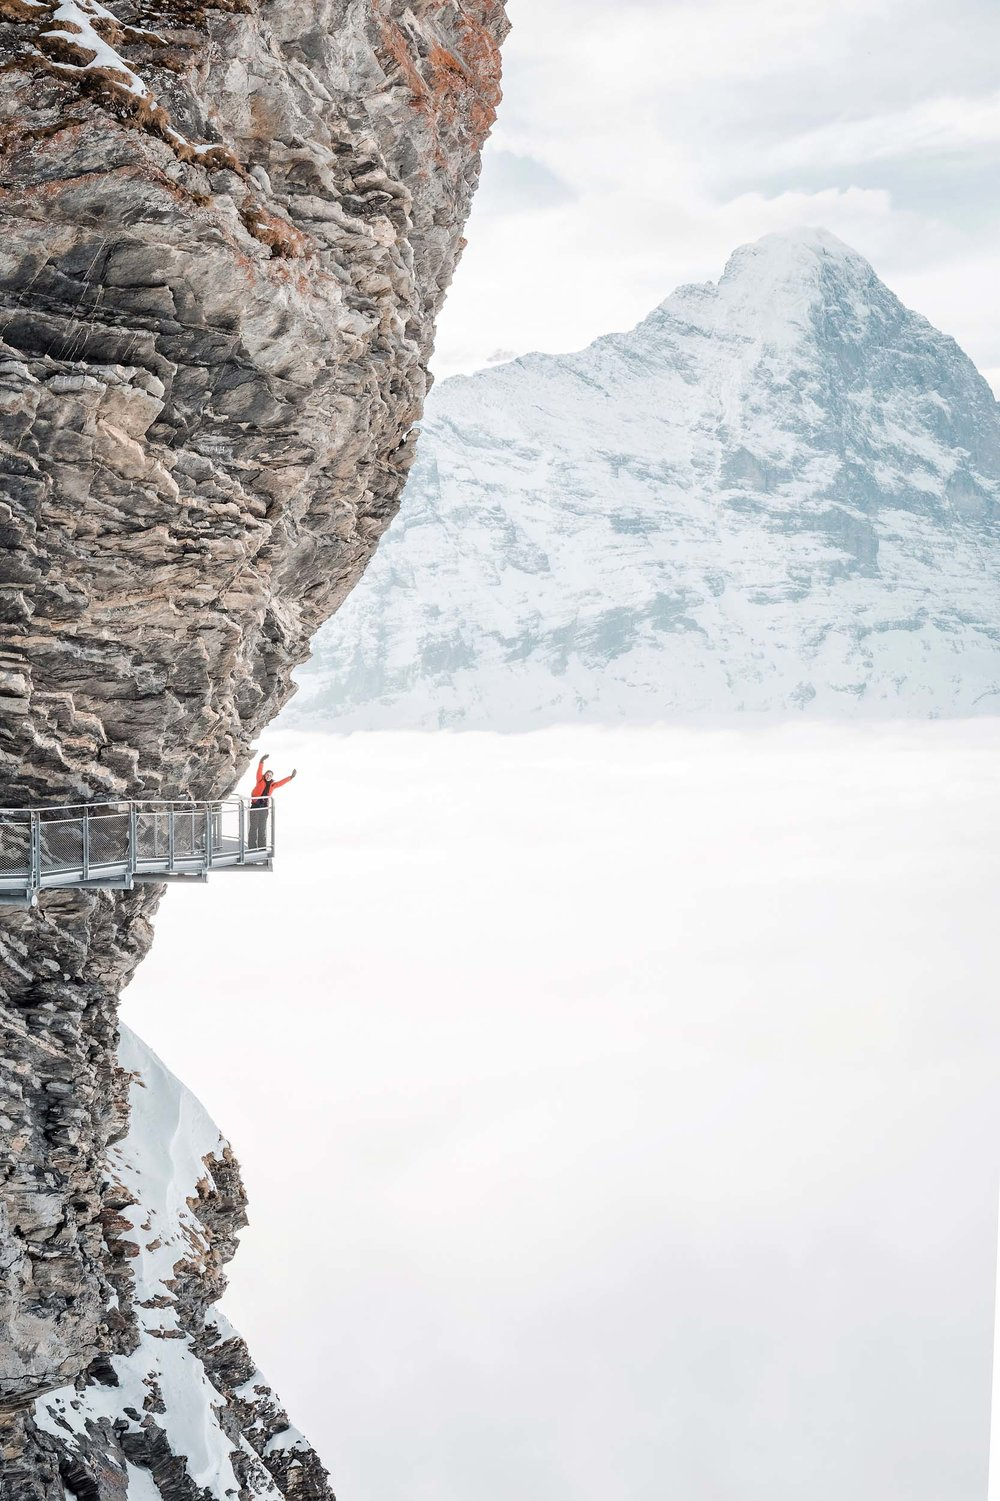 Grindelwald-First is full of so many different adventures, great in both winter and summer